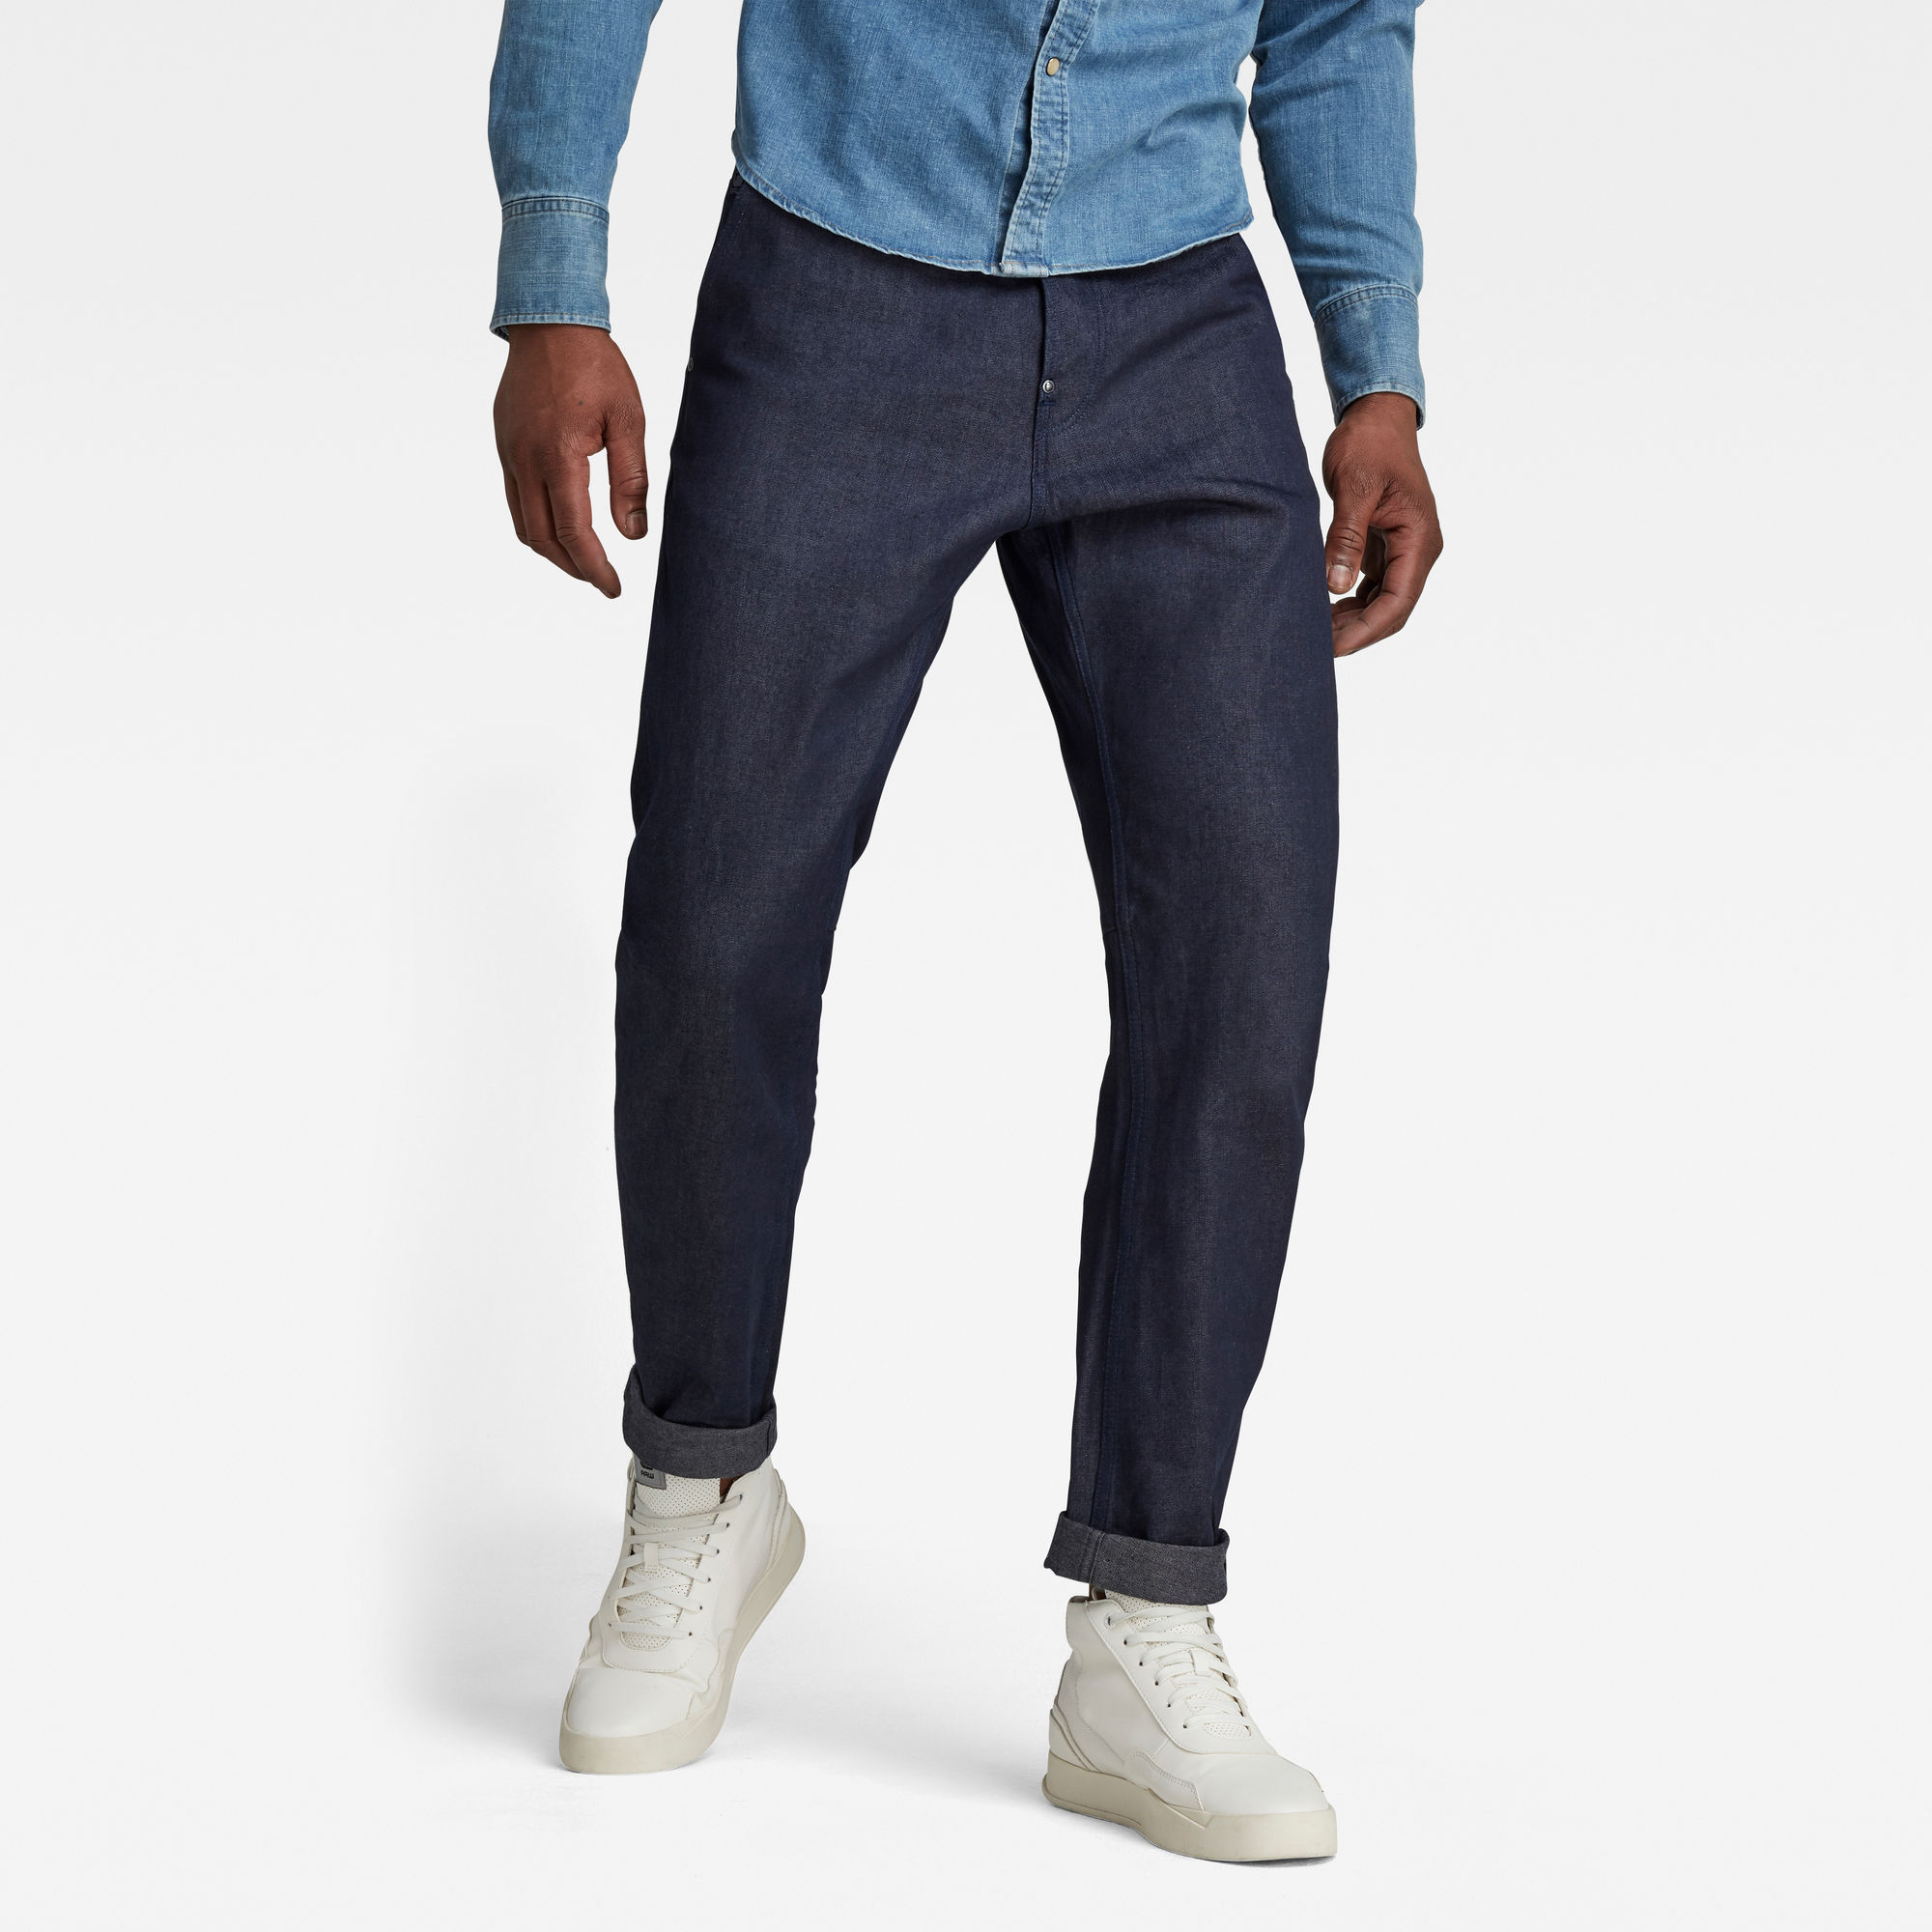 G-Star RAW Heren Grip 3D Relaxed Tapered Jeans Donkerblauw